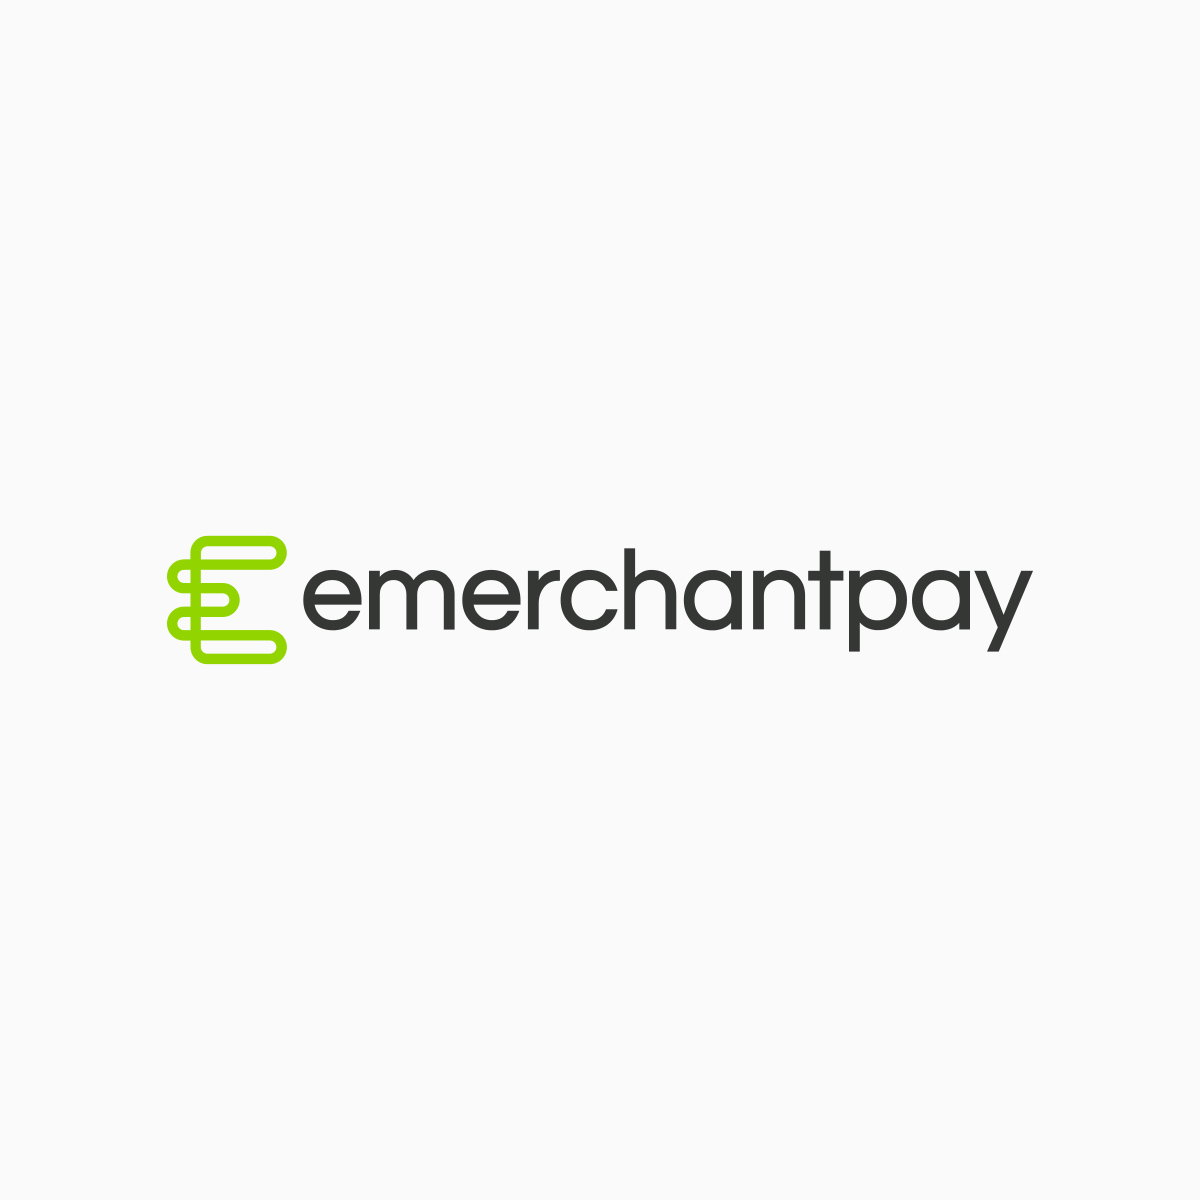 Faculty Creative Designs New Identity for emerchantpay